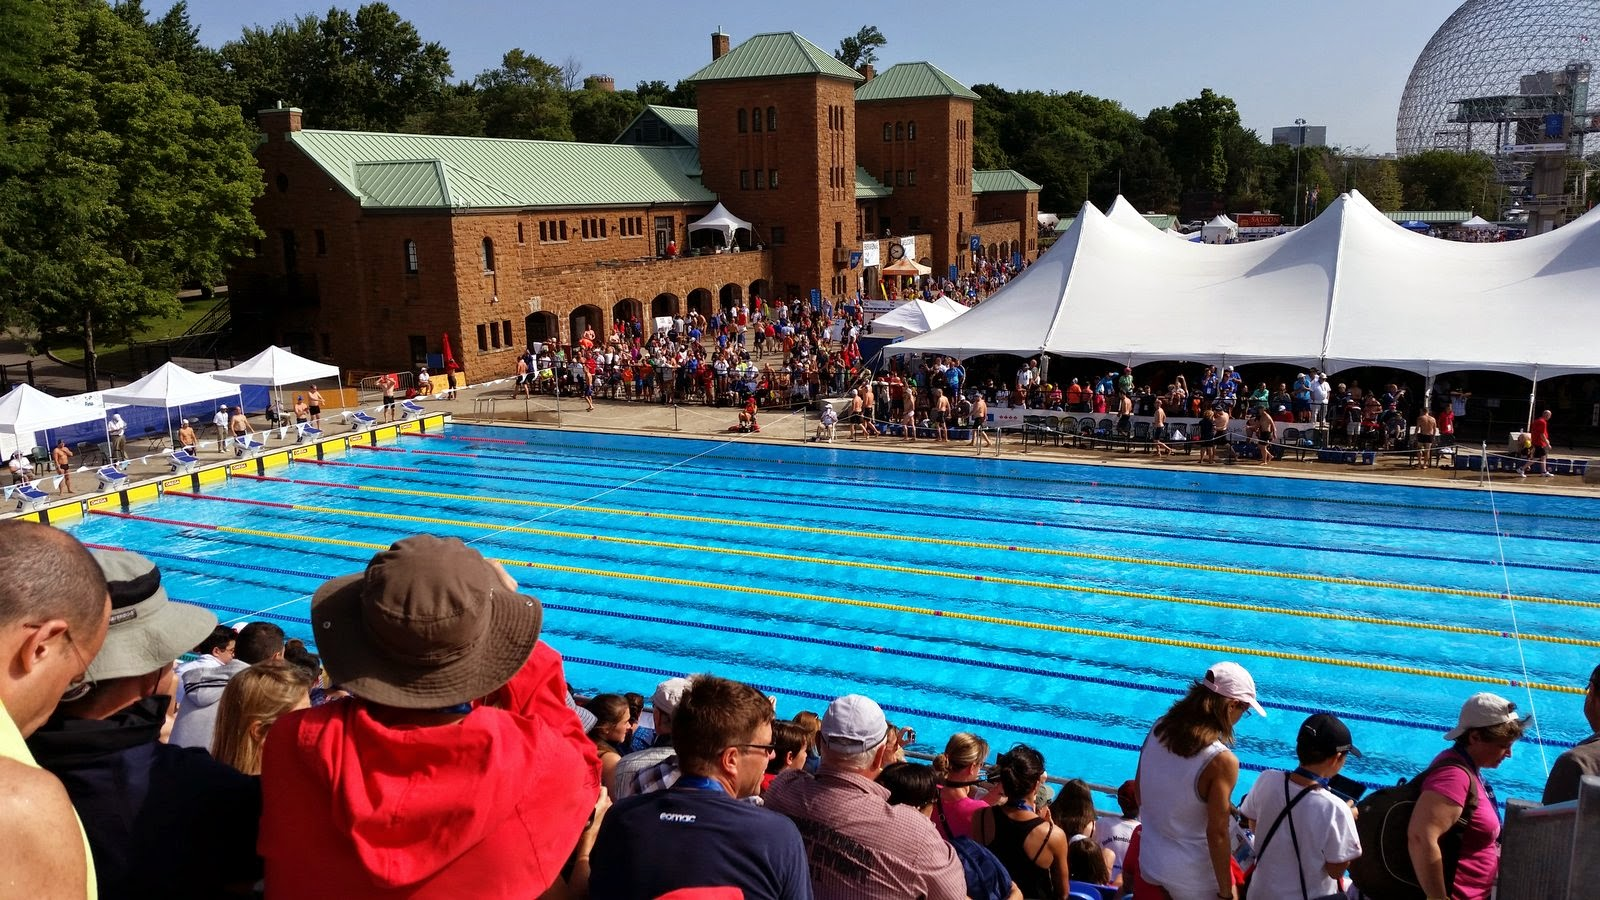 Packed crowds at the main competition pool